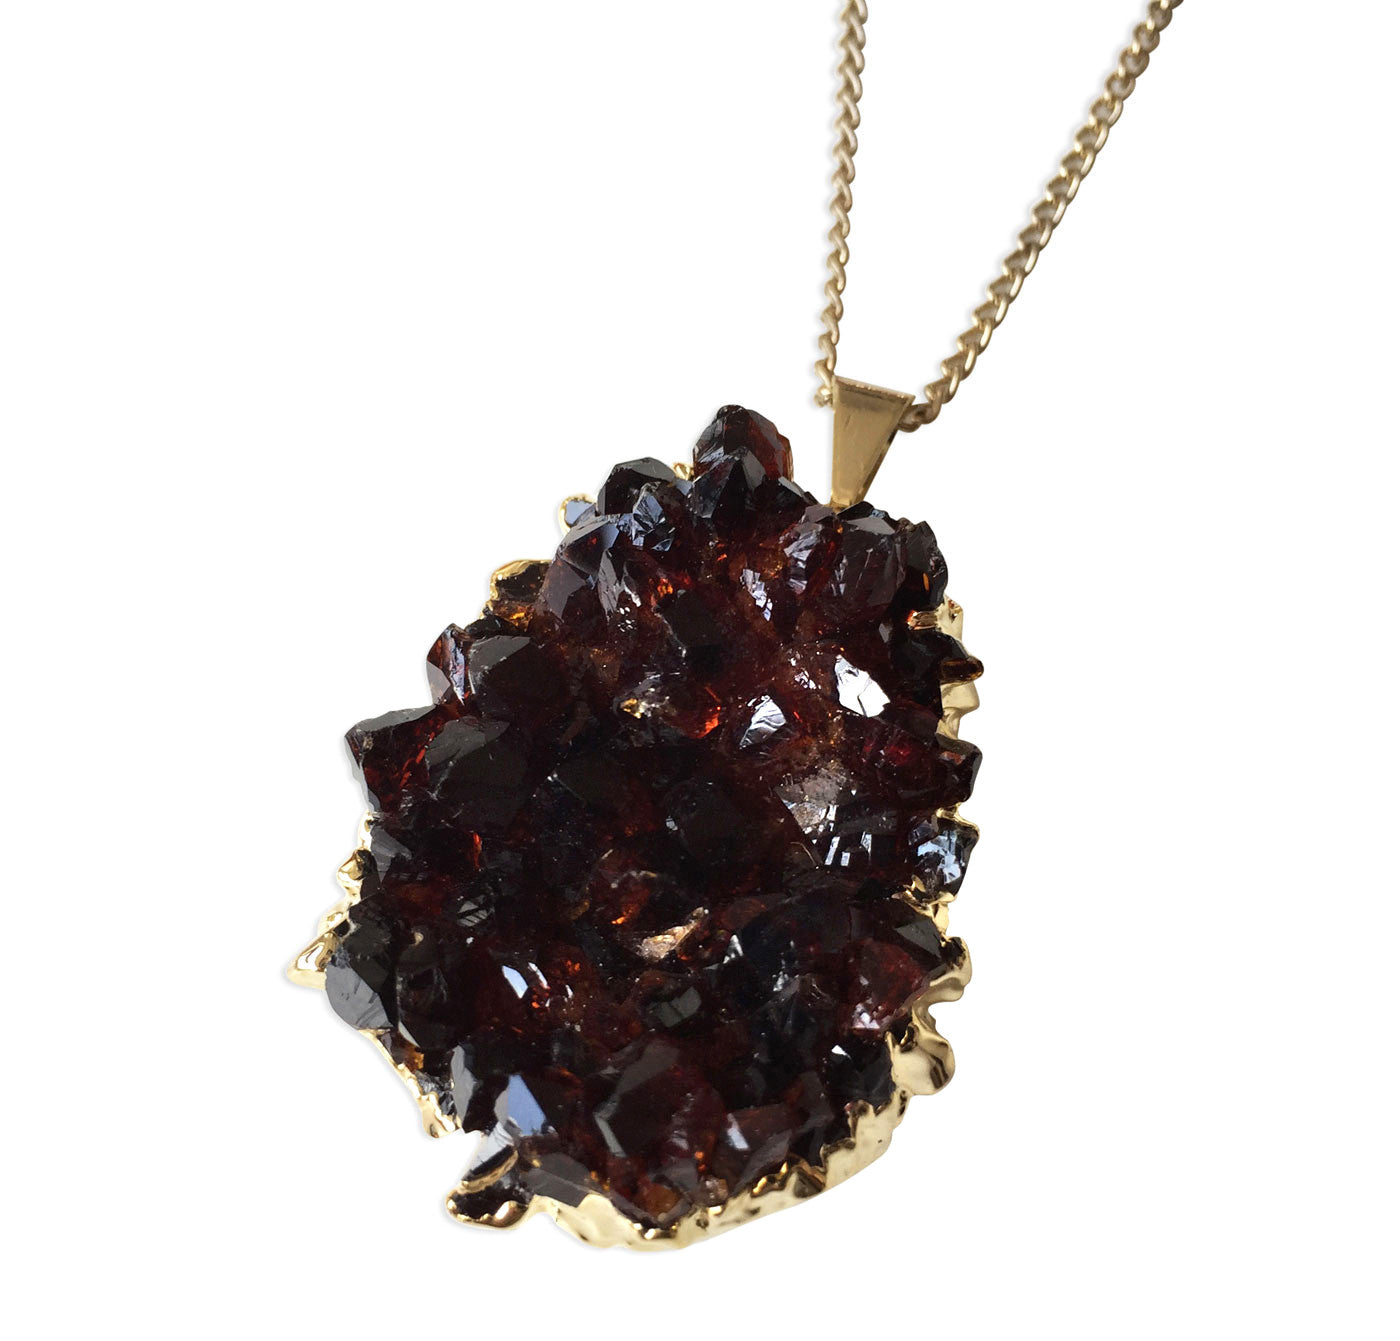 decadent stone raw fall for tutorial blog diy necklaces necklace crystal